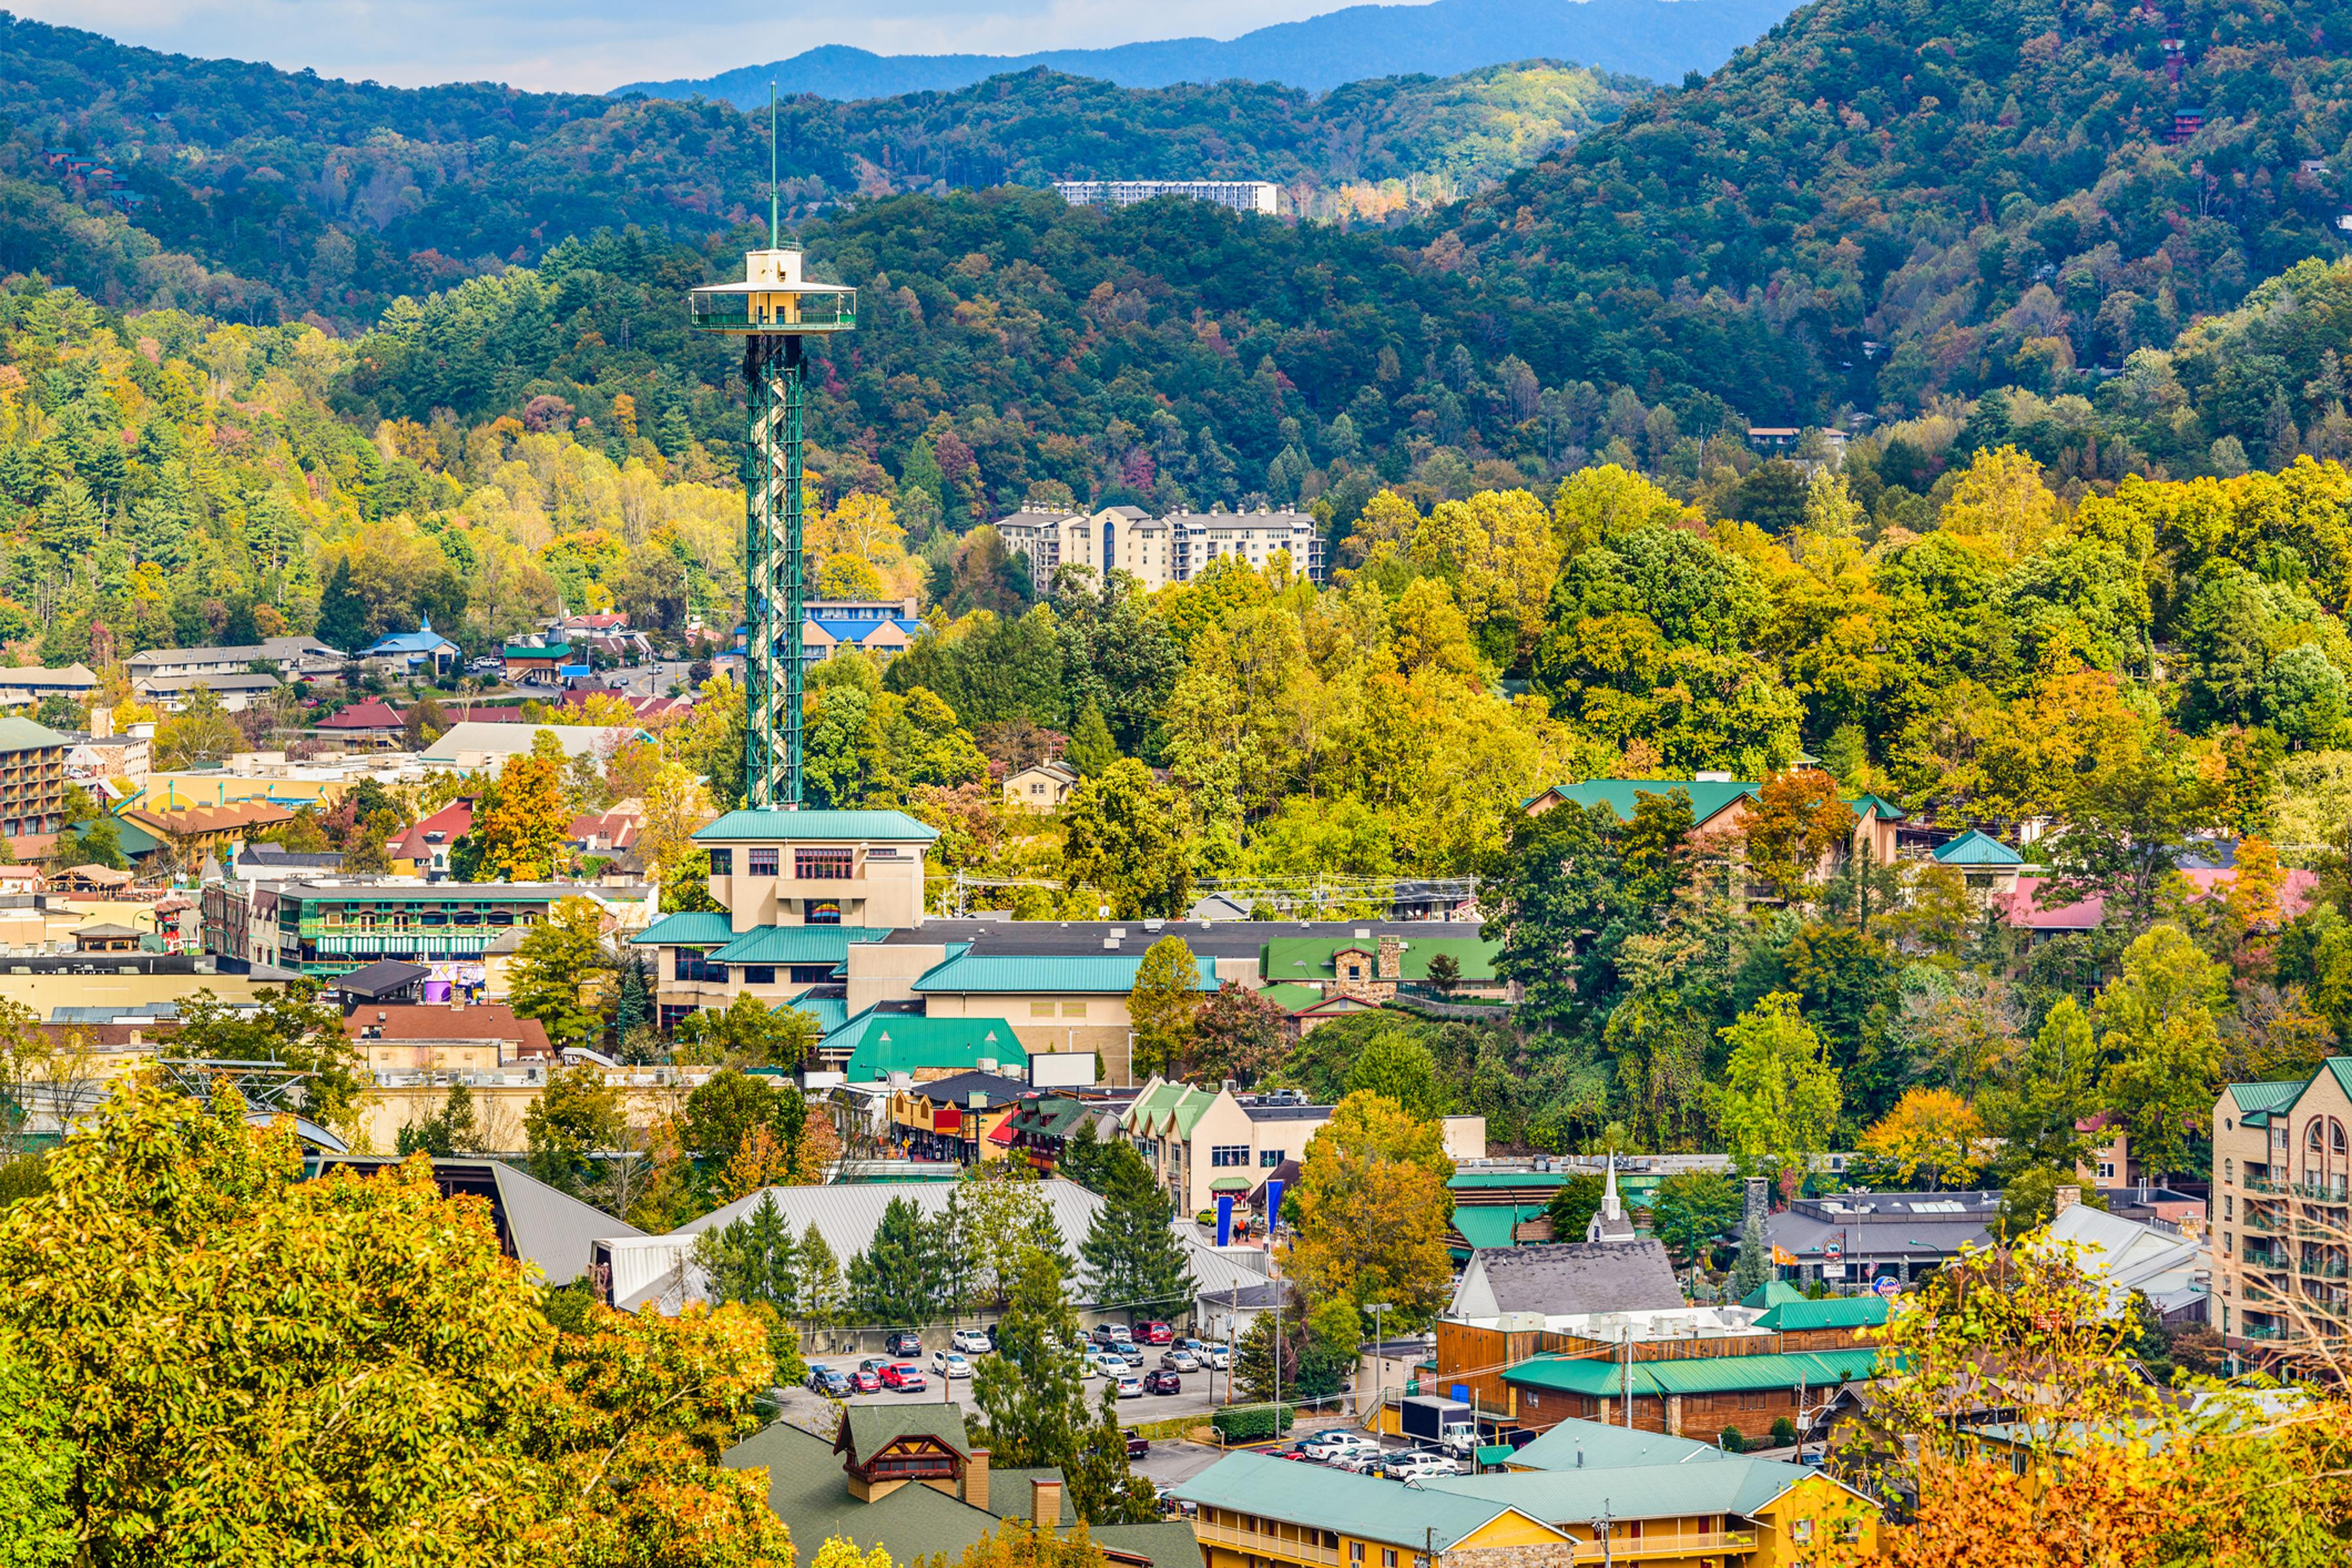 The quaint downtown streets of Gatlinburg are lined with lots of family-friendly restaurants.